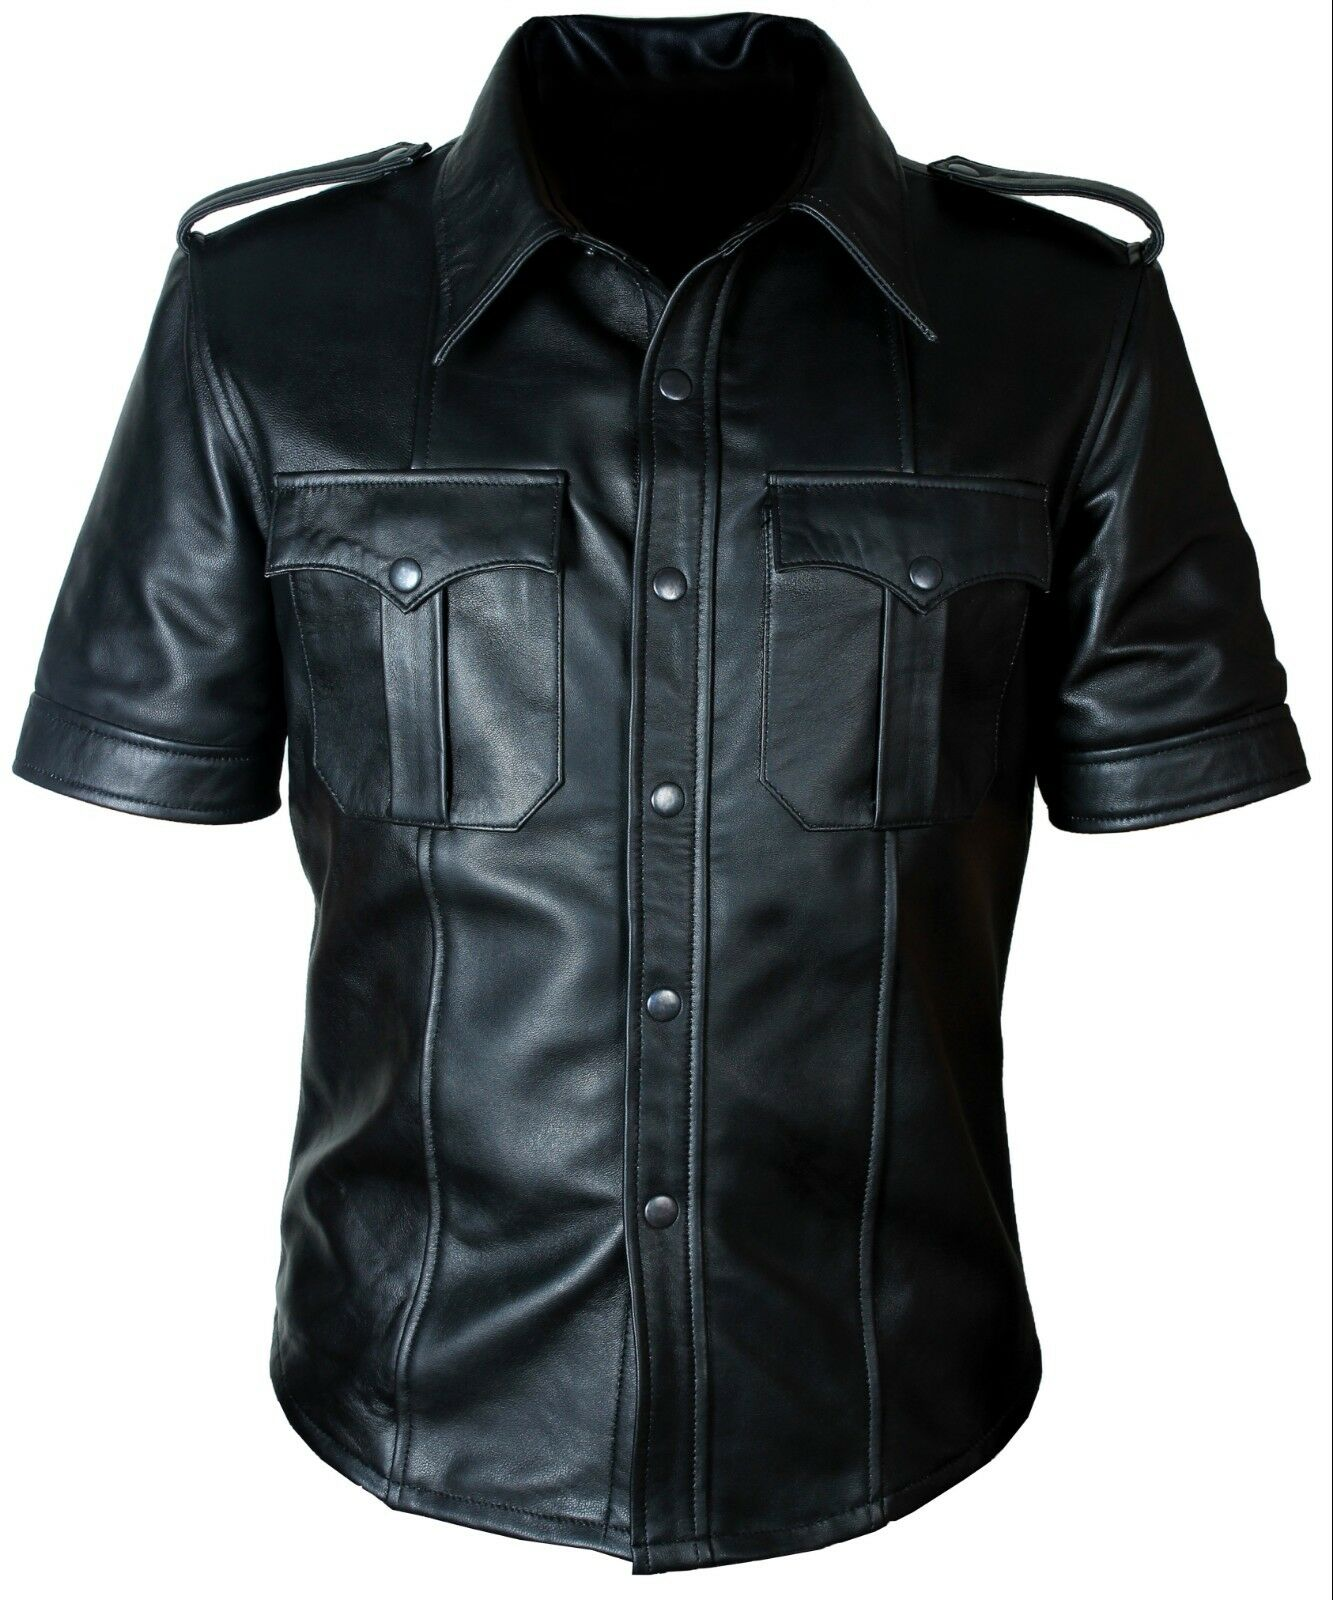 MENS BlauFF GAY POLICE UNIFORM MILITARY STYLE LAMBSKIN LEATHER SHIRT NEW